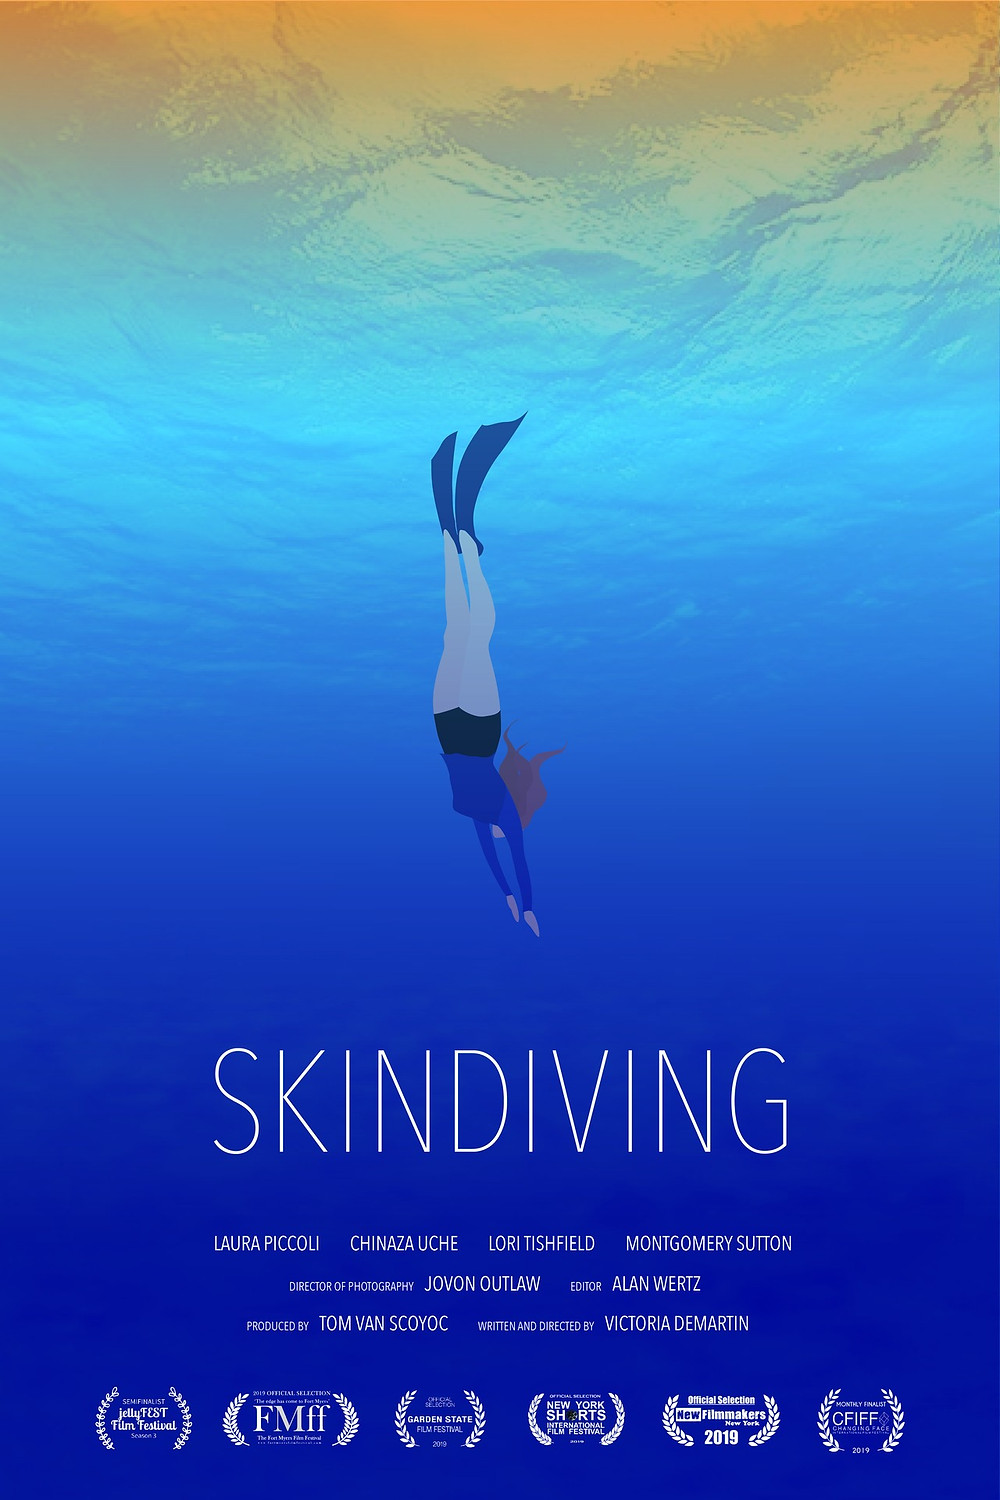 Animated graphic of a woman freediving underwater. Film title Skindiving